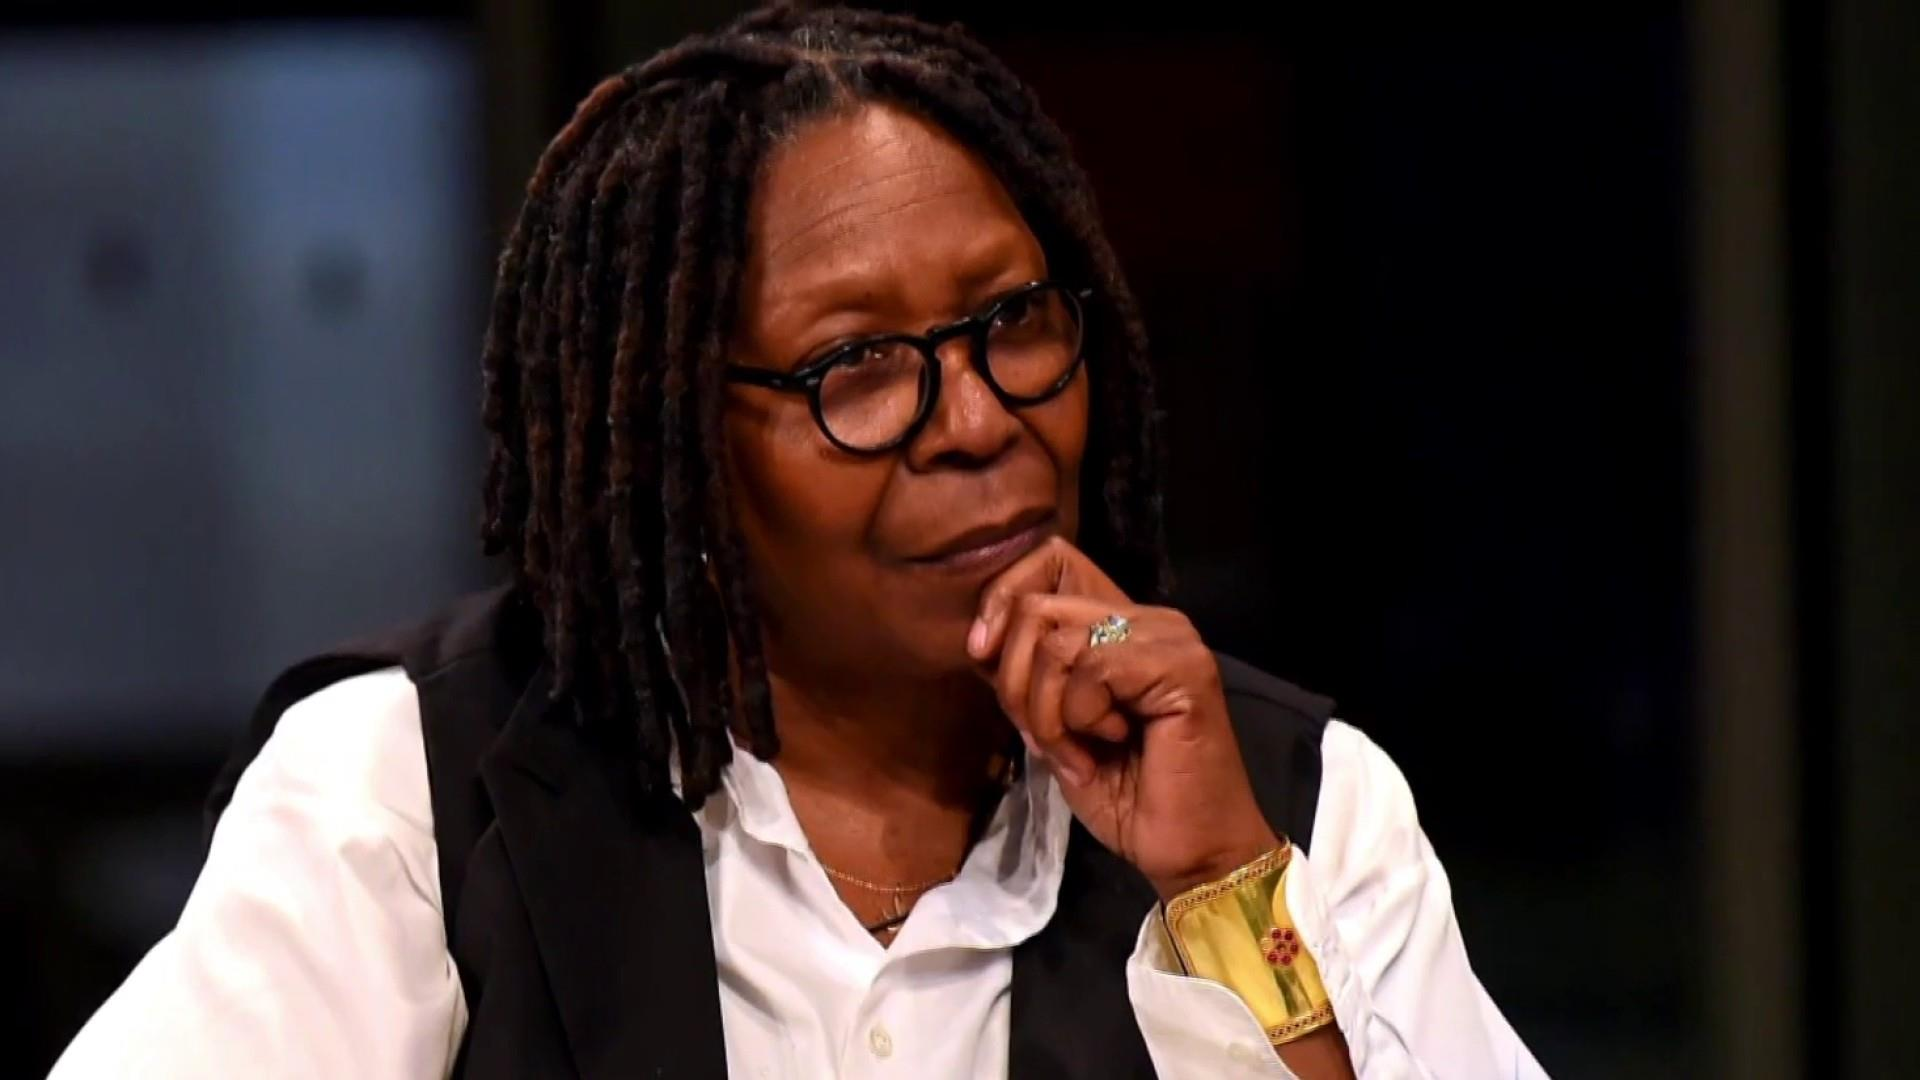 Whoopi Goldberg's Surprise Visit After Health Scare Brings Tears On 'The View'""